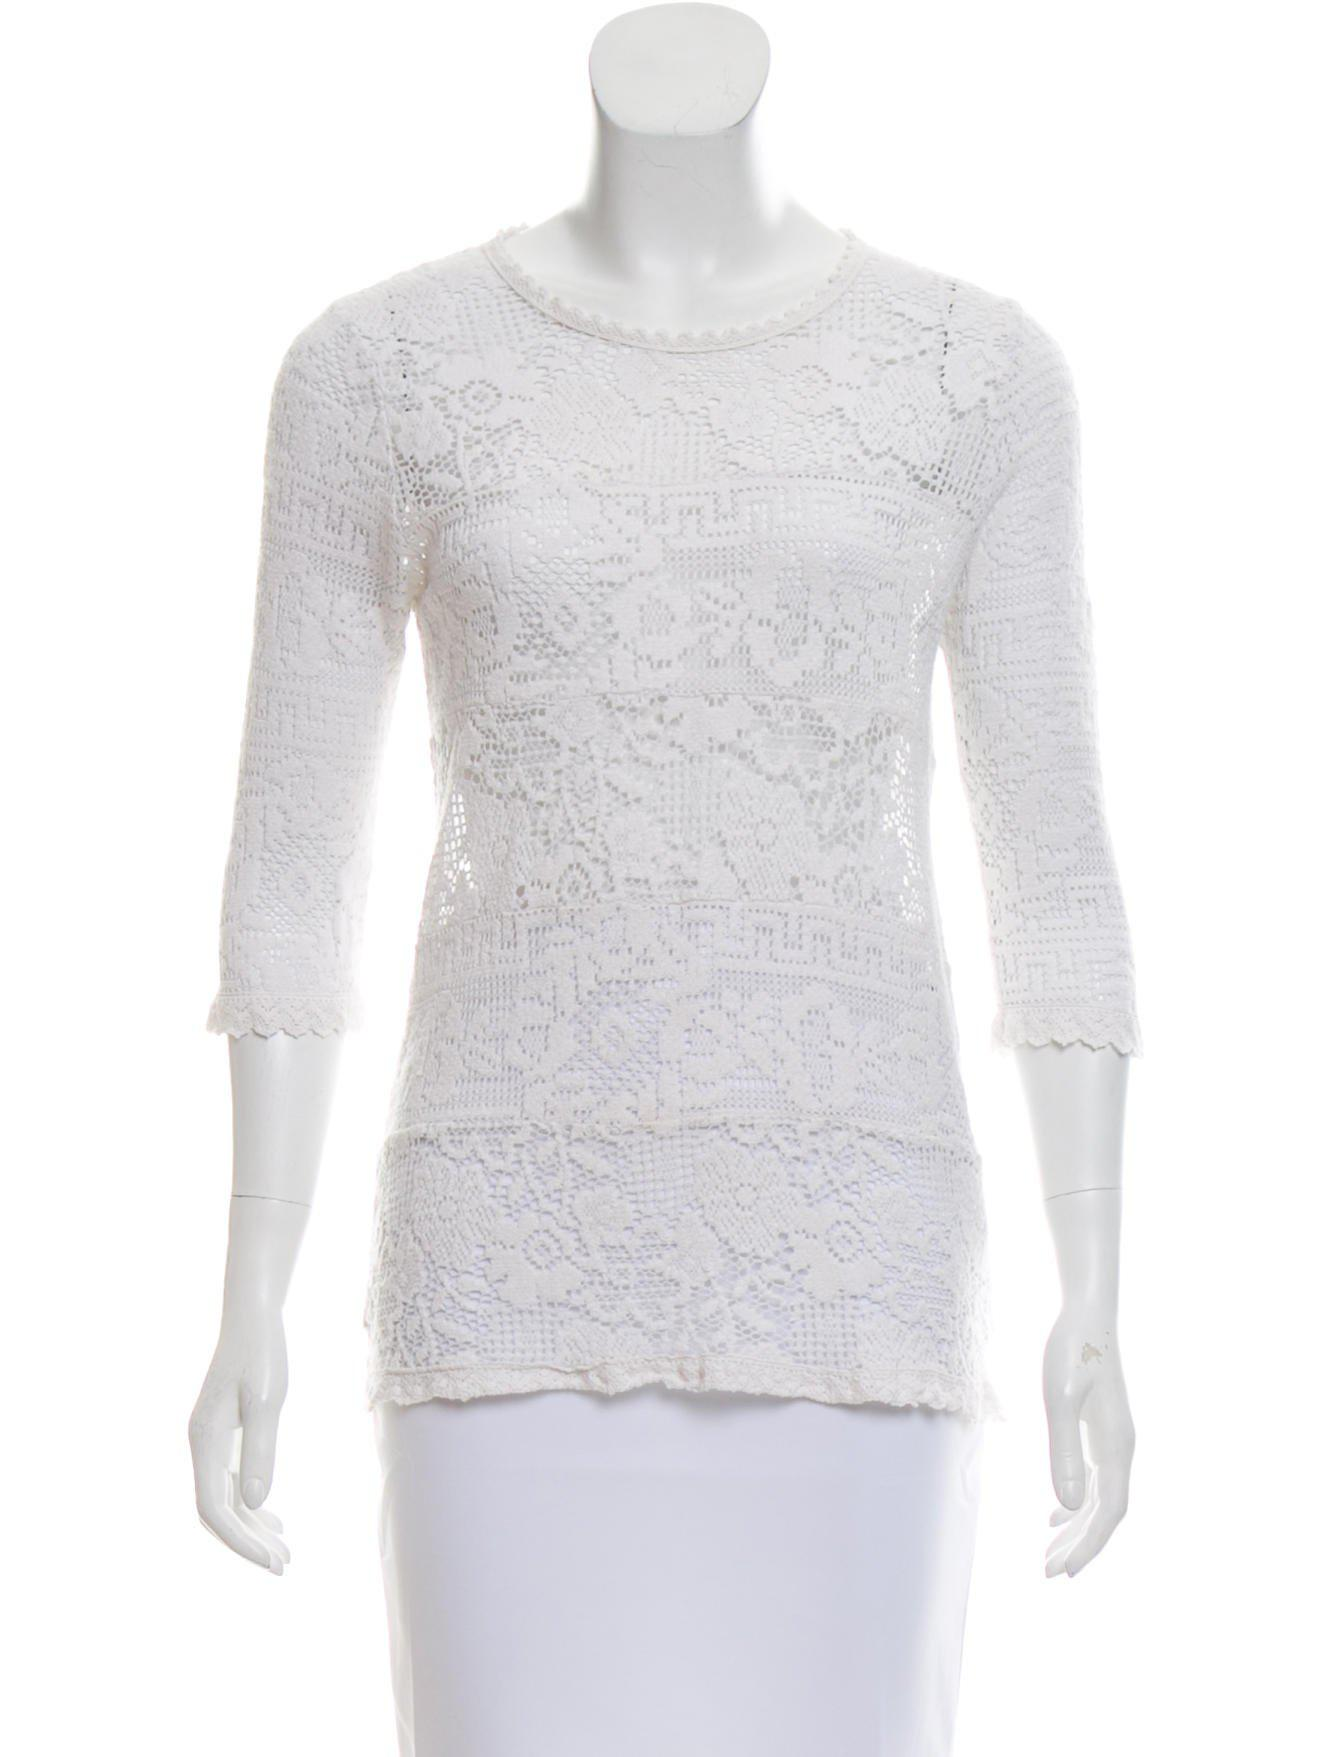 0077d92cda8 Lyst - Étoile Isabel Marant Lace Open-knit Top in White